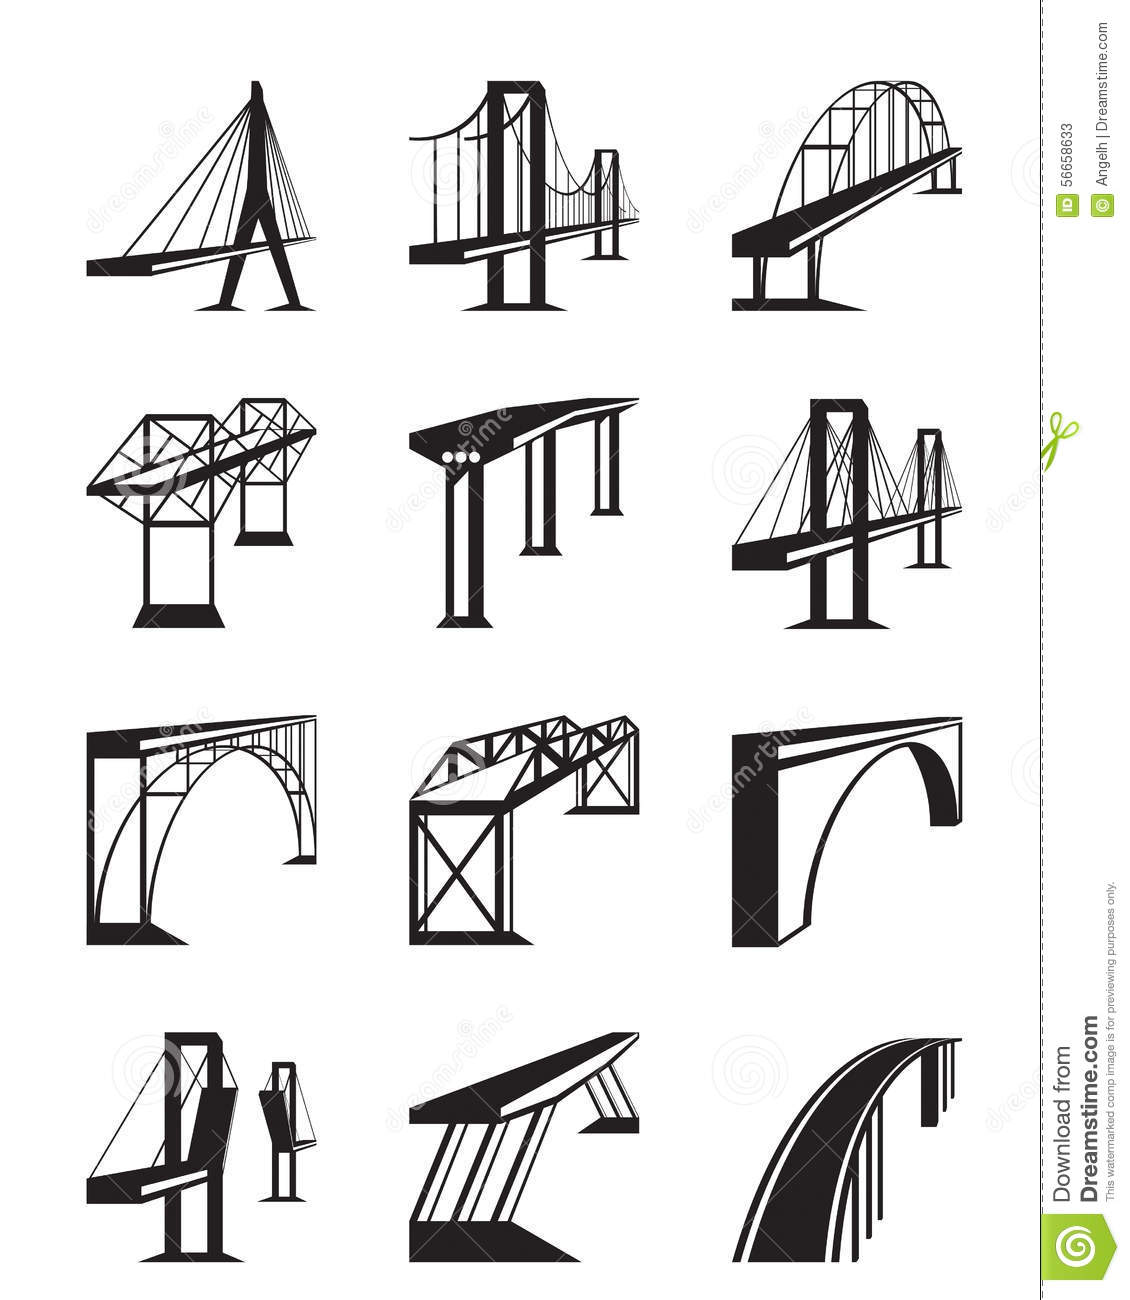 Tipi Bauen Various Types Of Bridges In Perspective Stock Vector